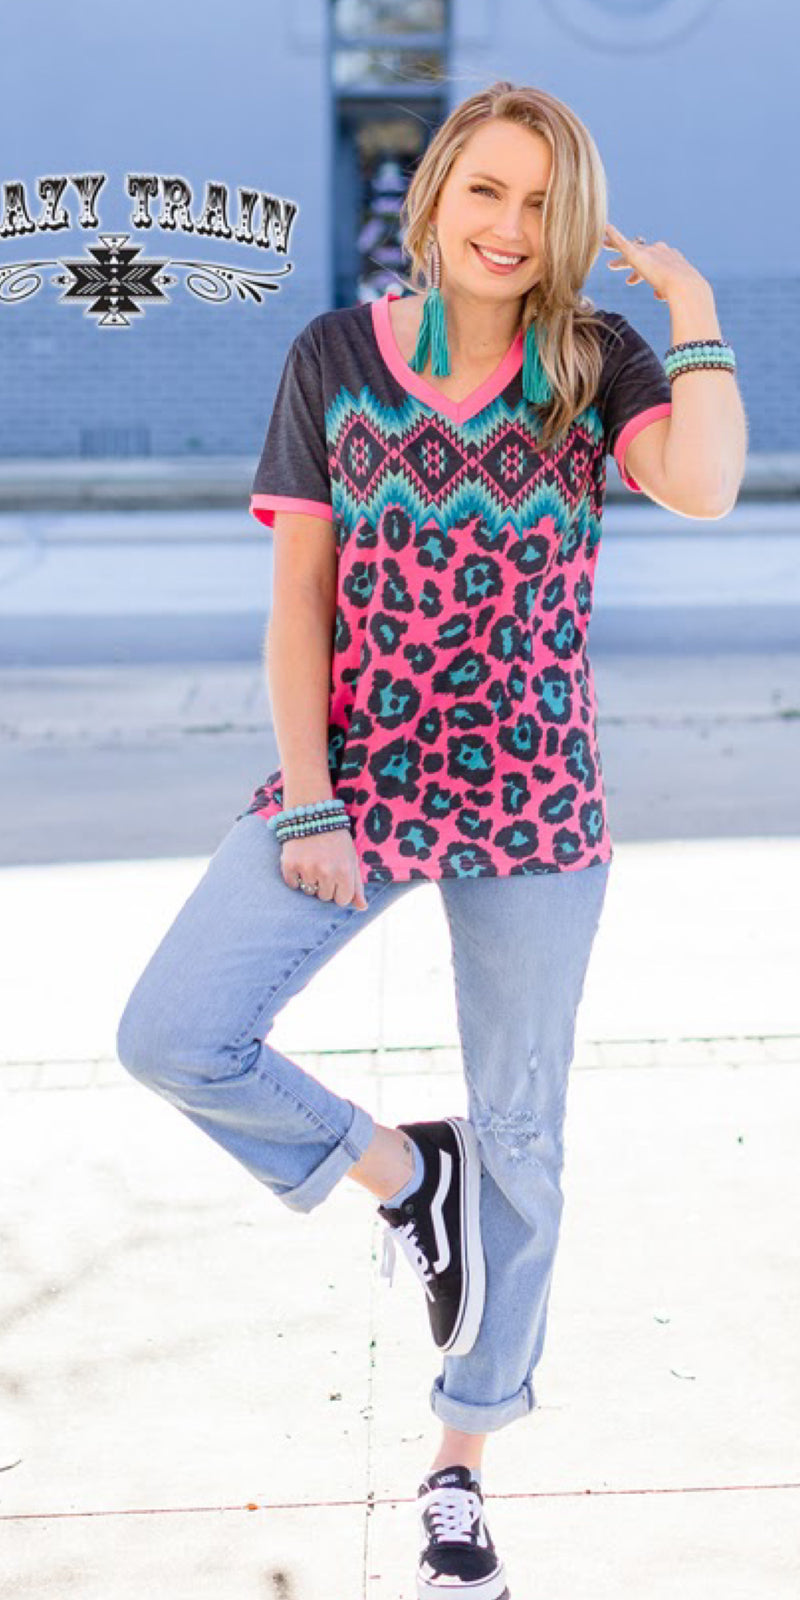 Outlaw Love Aztec Leopard Top - Also in Plus Size